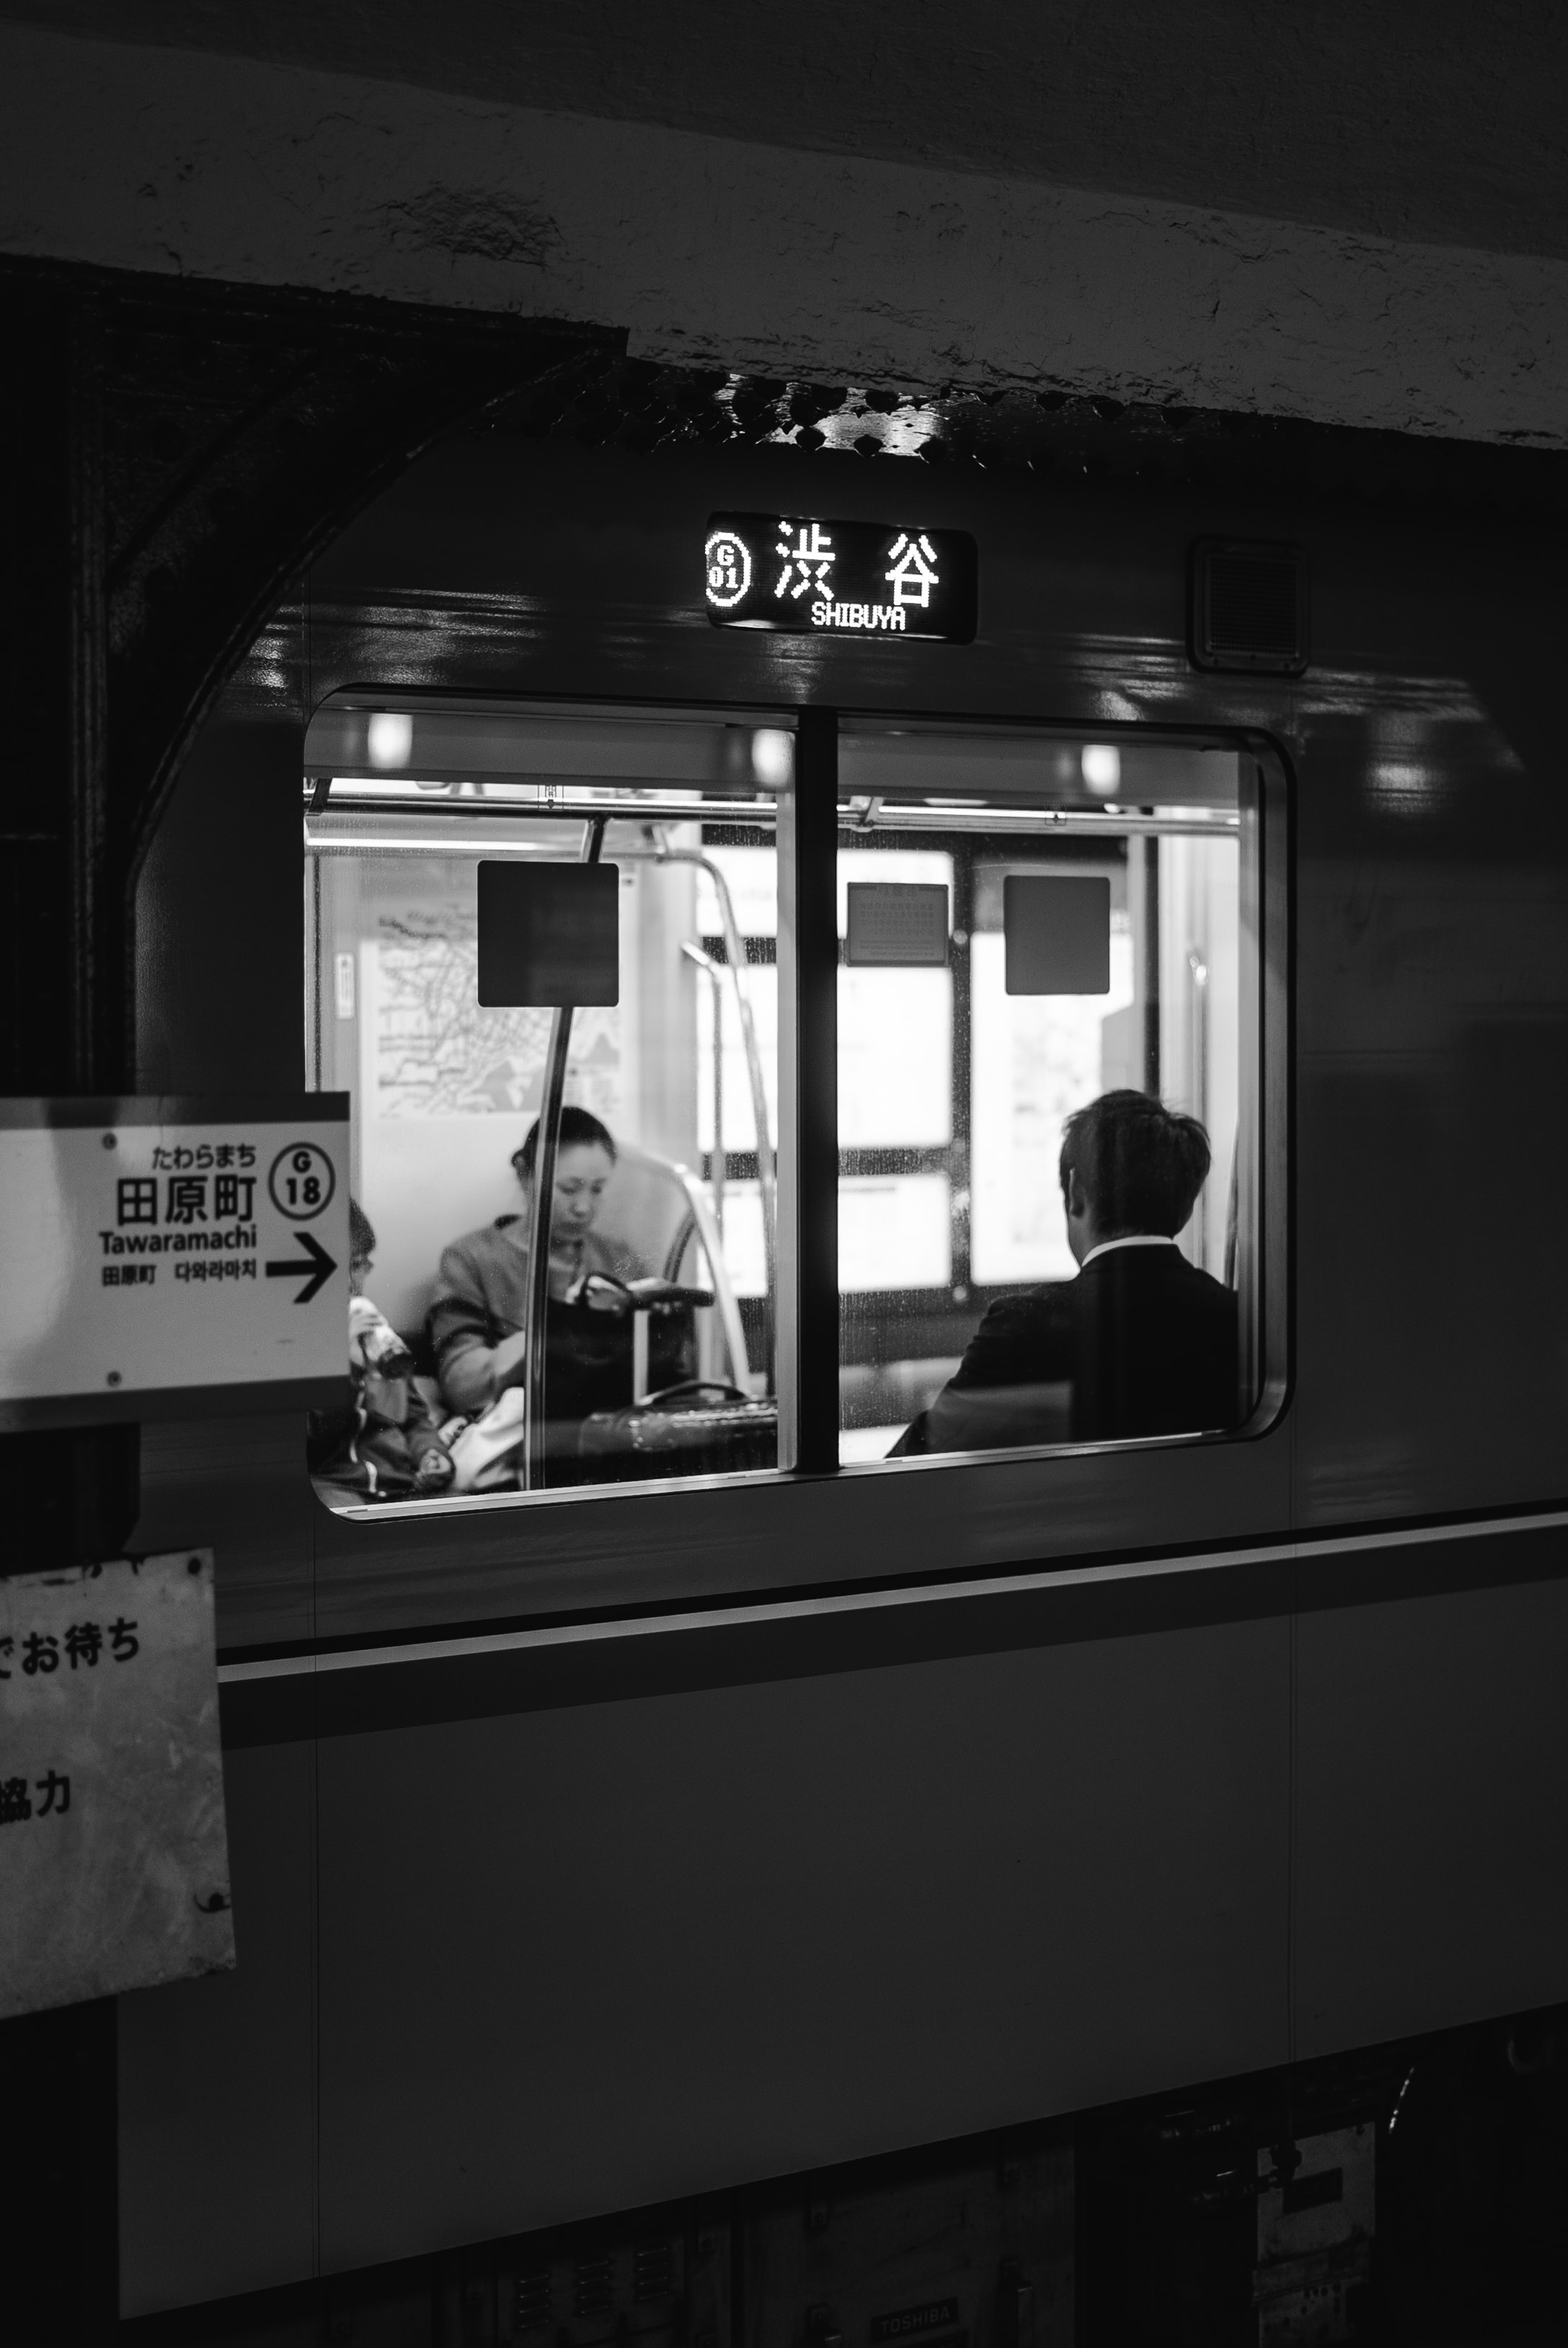 grayscale photo of two people sitting in train